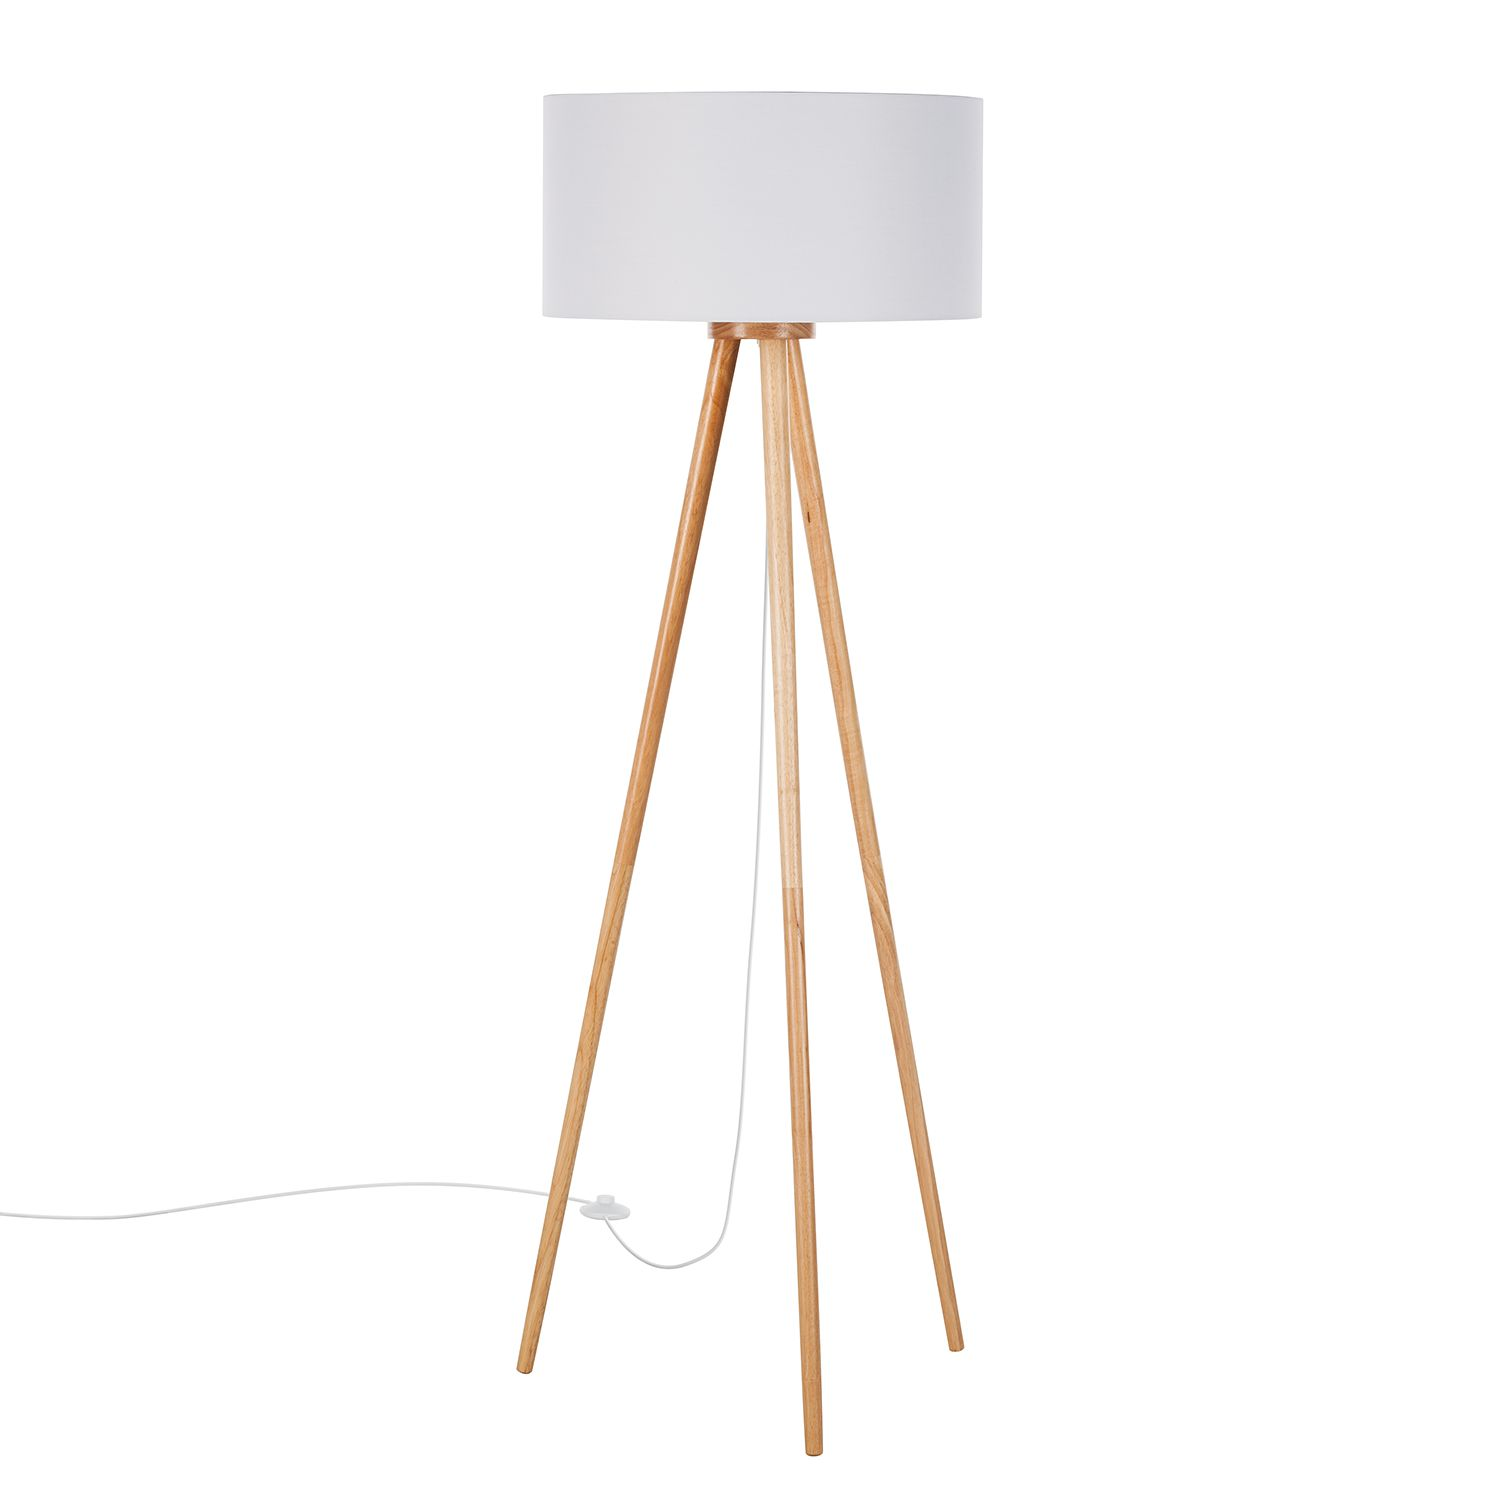 staande lamp tripod kopen online internetwinkel. Black Bedroom Furniture Sets. Home Design Ideas